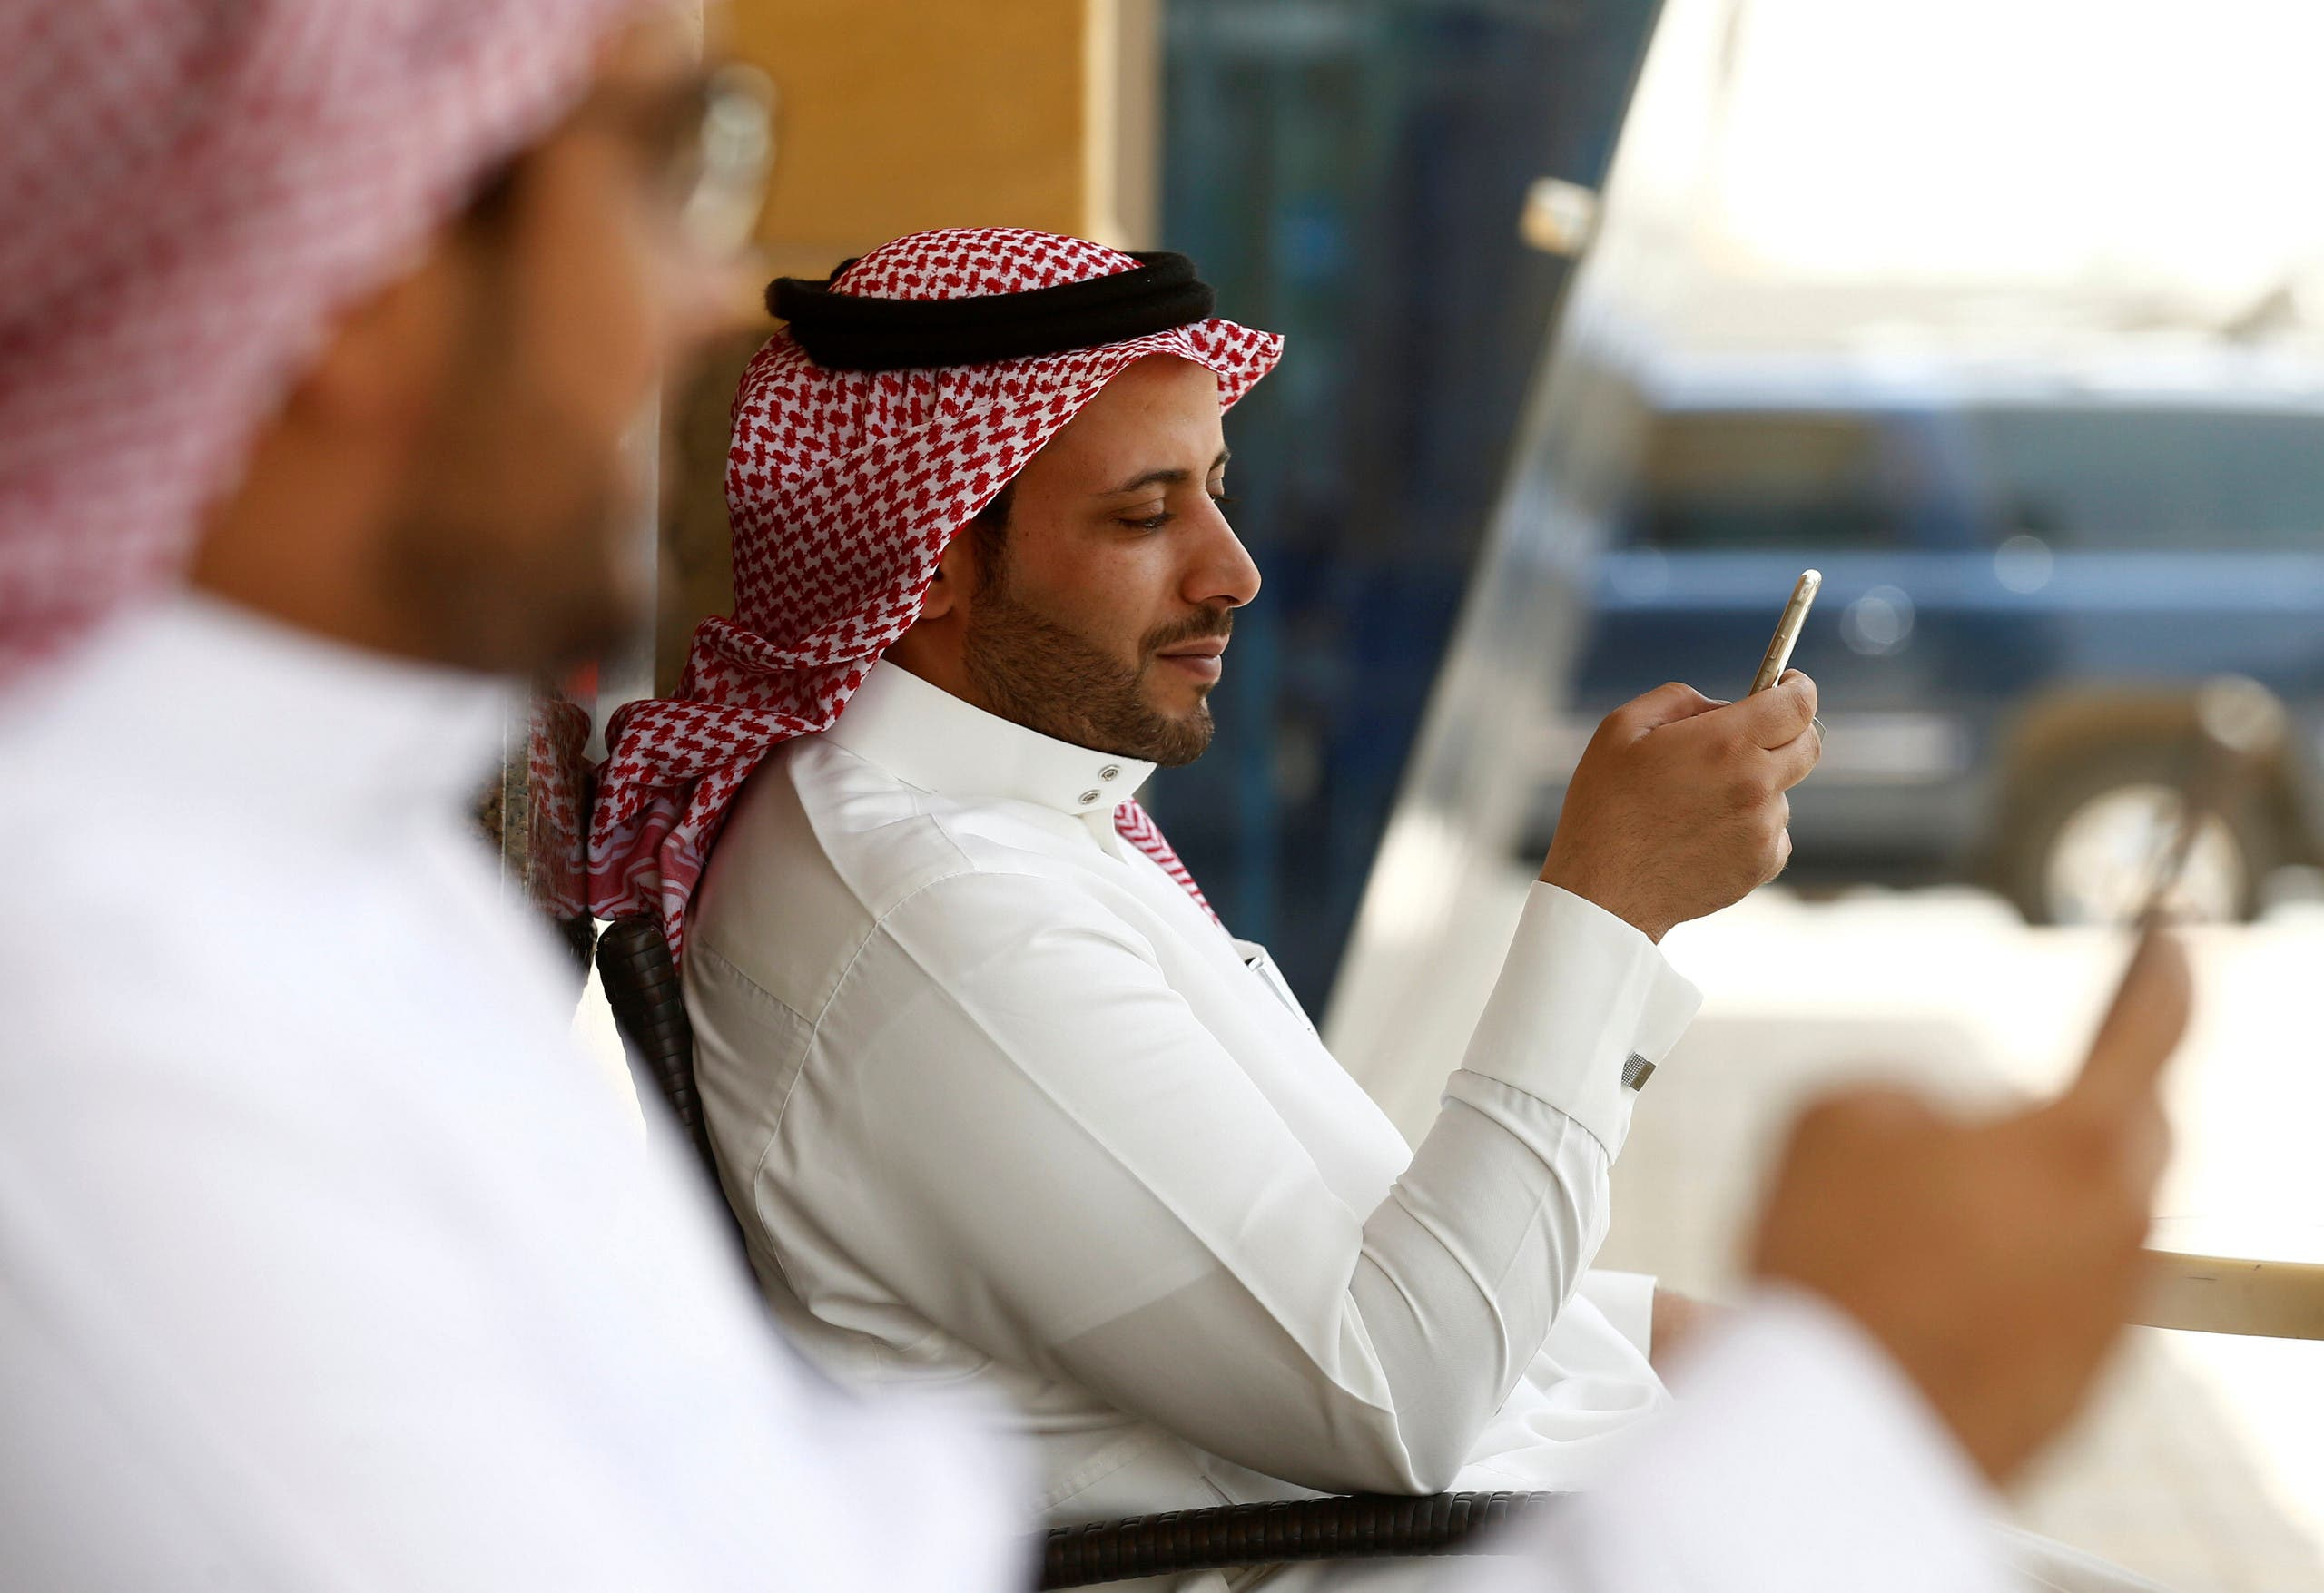 Saudi men explore social media on their mobile devices as they sit at a cafe in Riyadh, Saudi Arabia May 24, 2016. (File photo: Reuters)